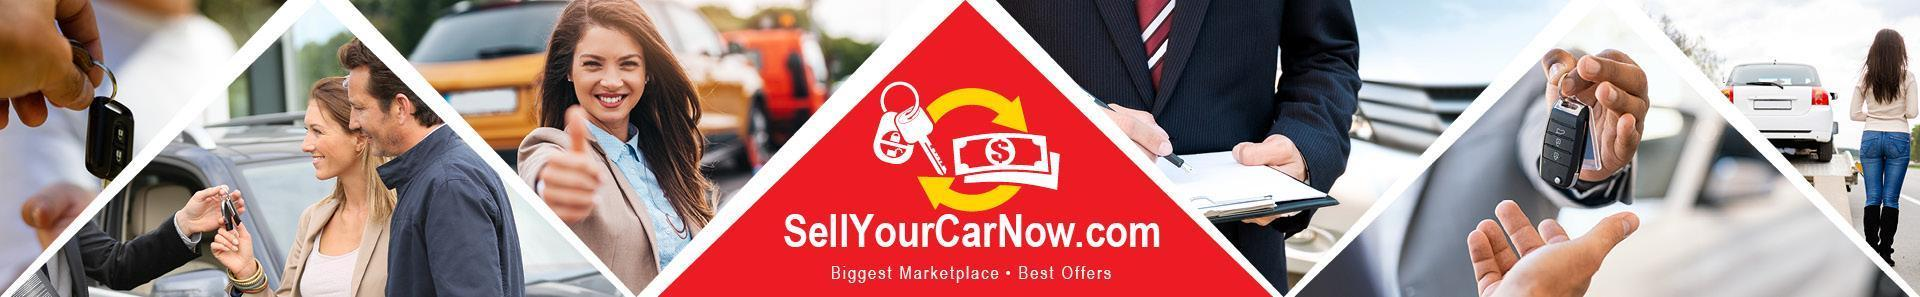 BuyACarNow.com | We Want to Buy Your Car | Route 46 Auto Group